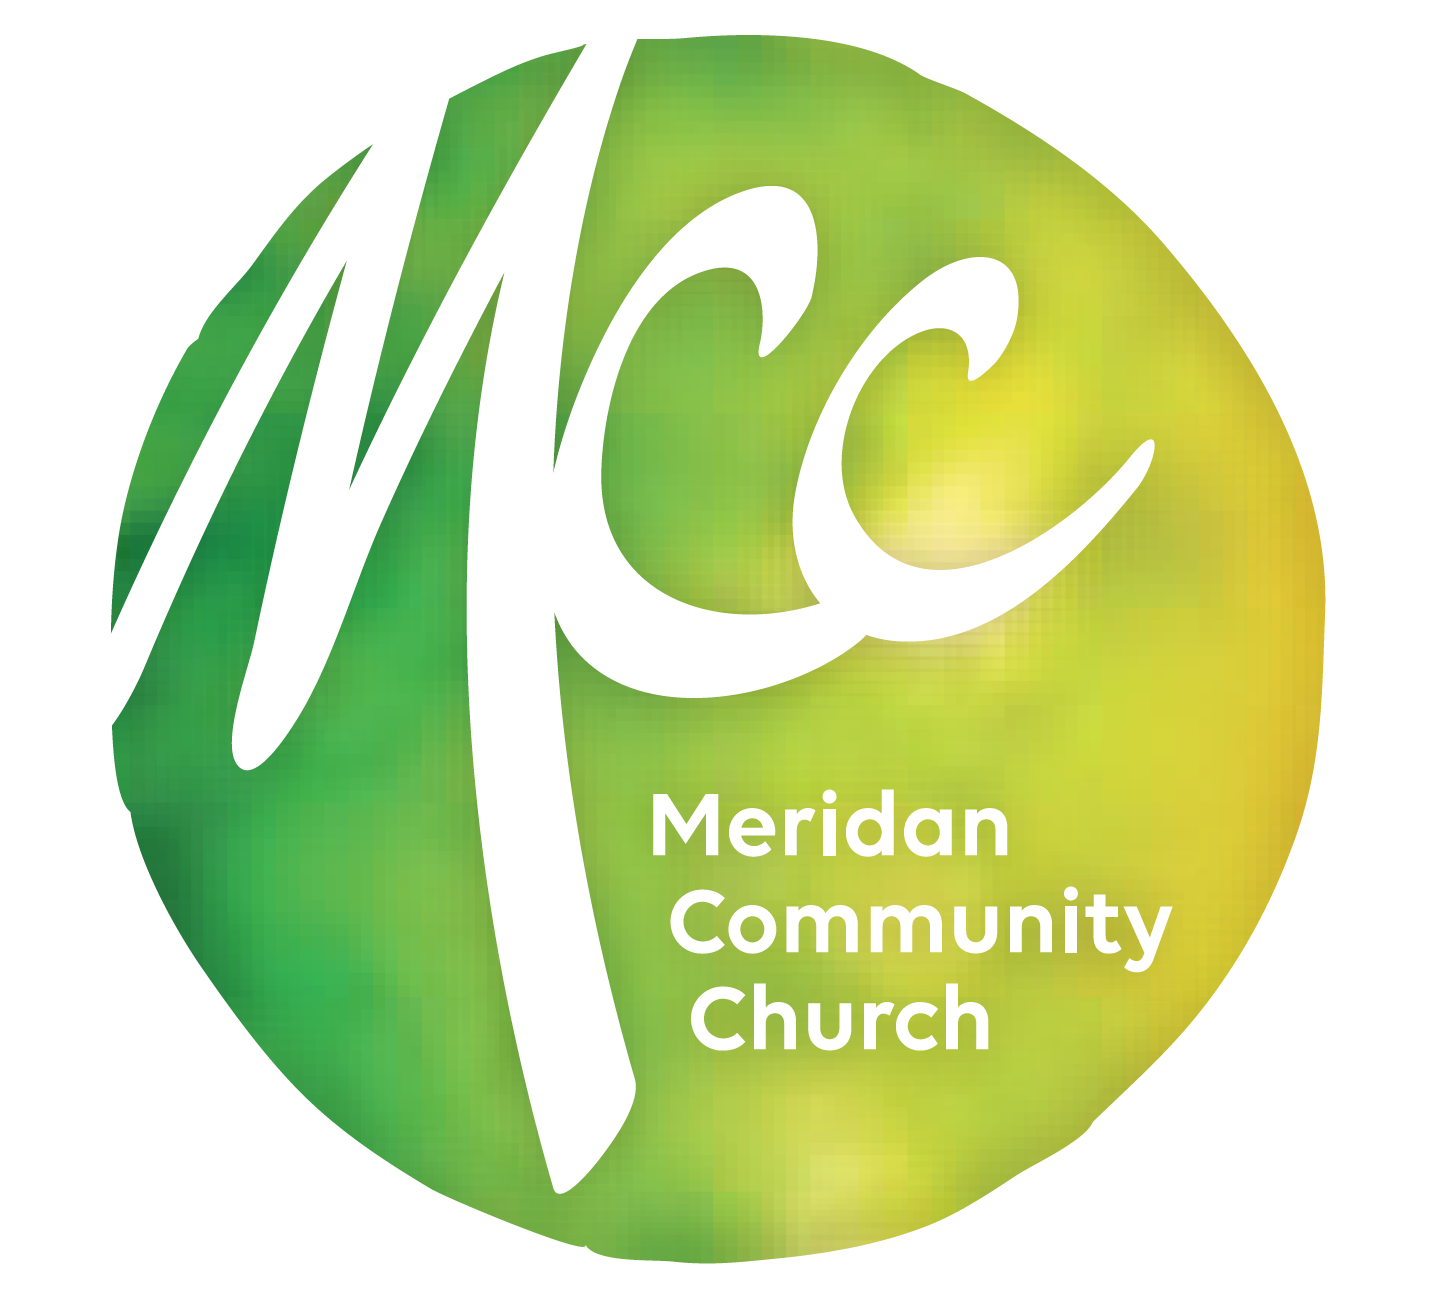 Meridan Community Church